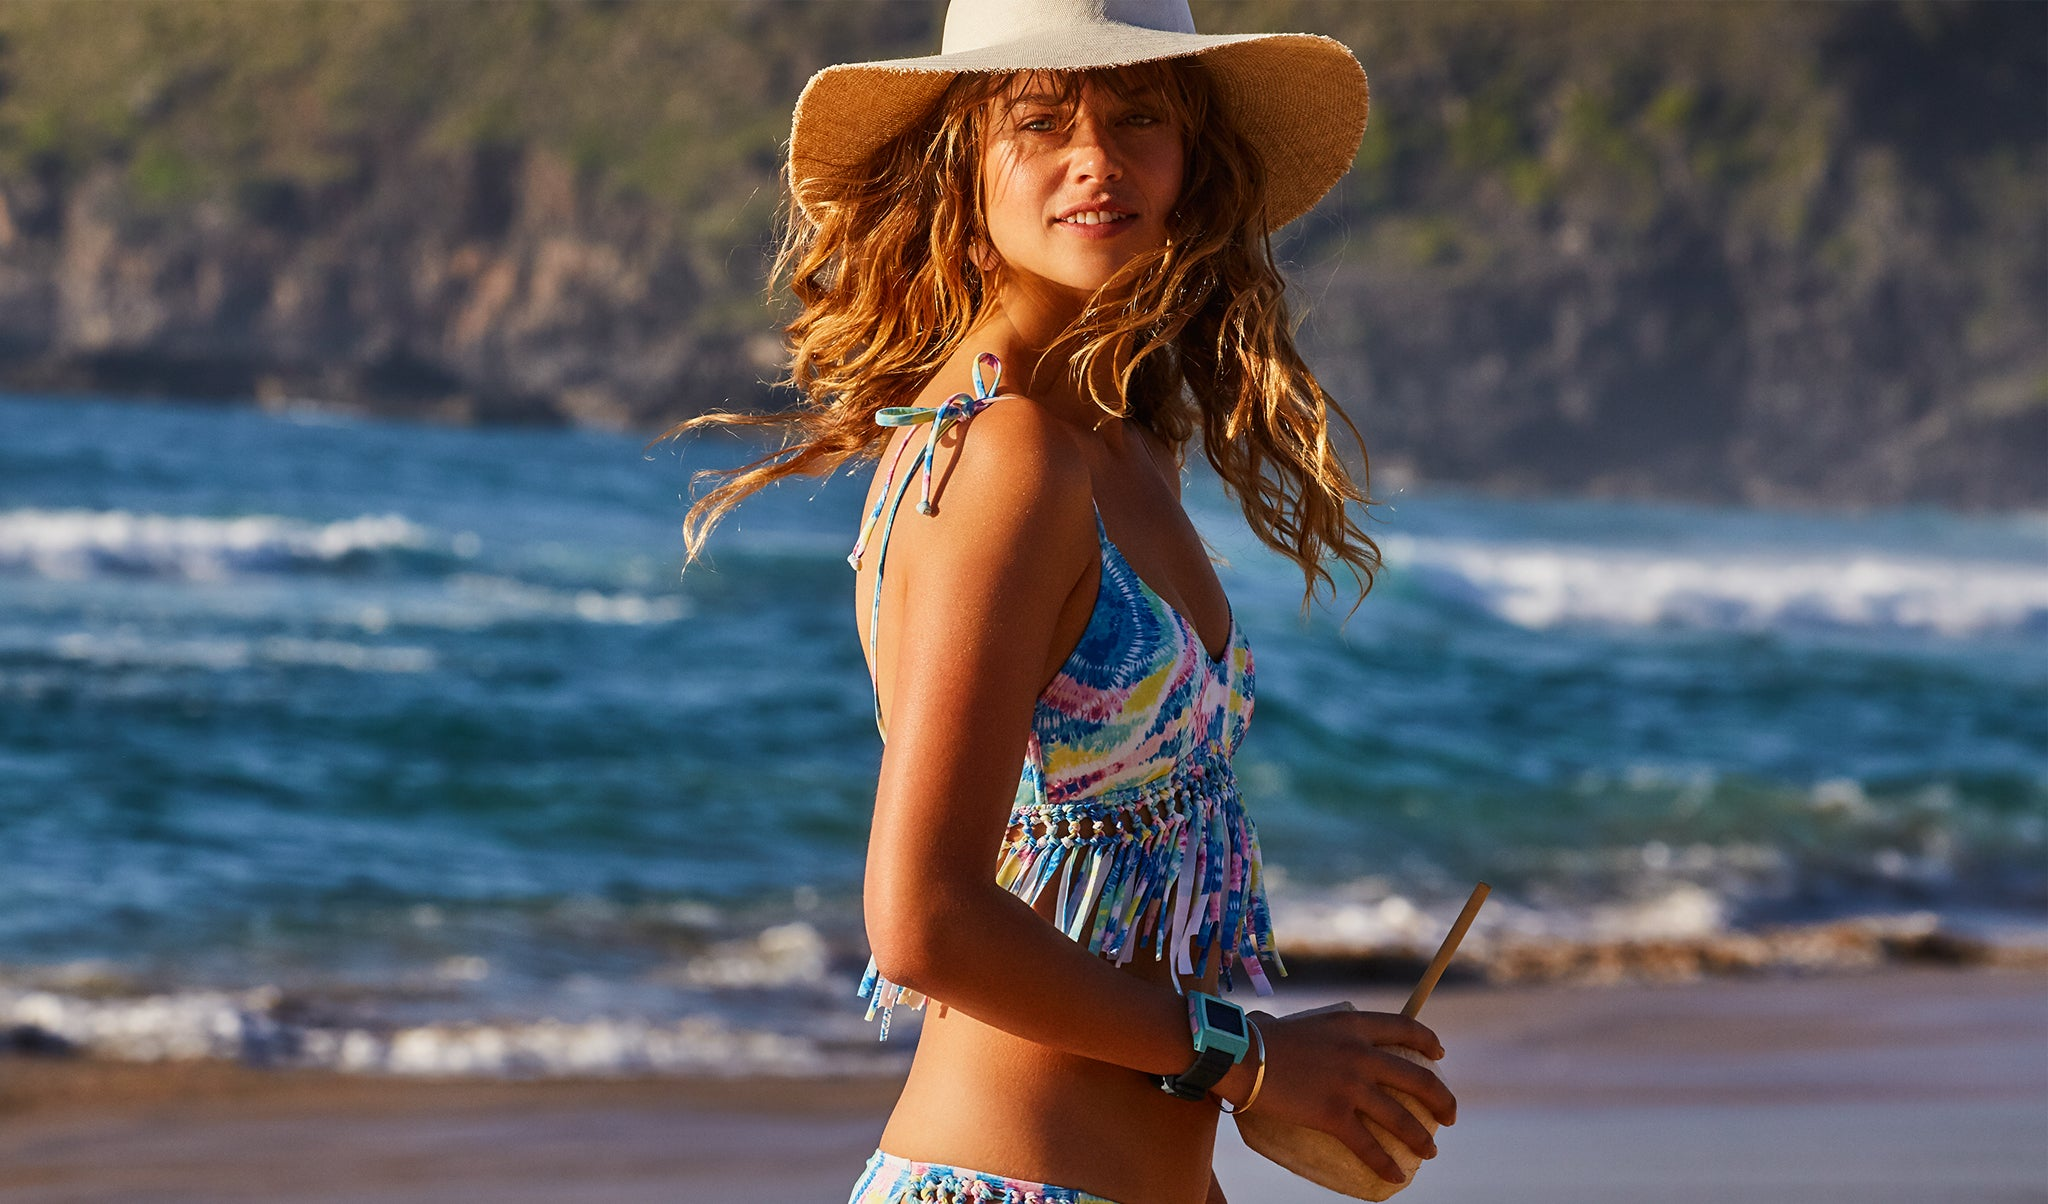 Piha Swimwear from New Zealand